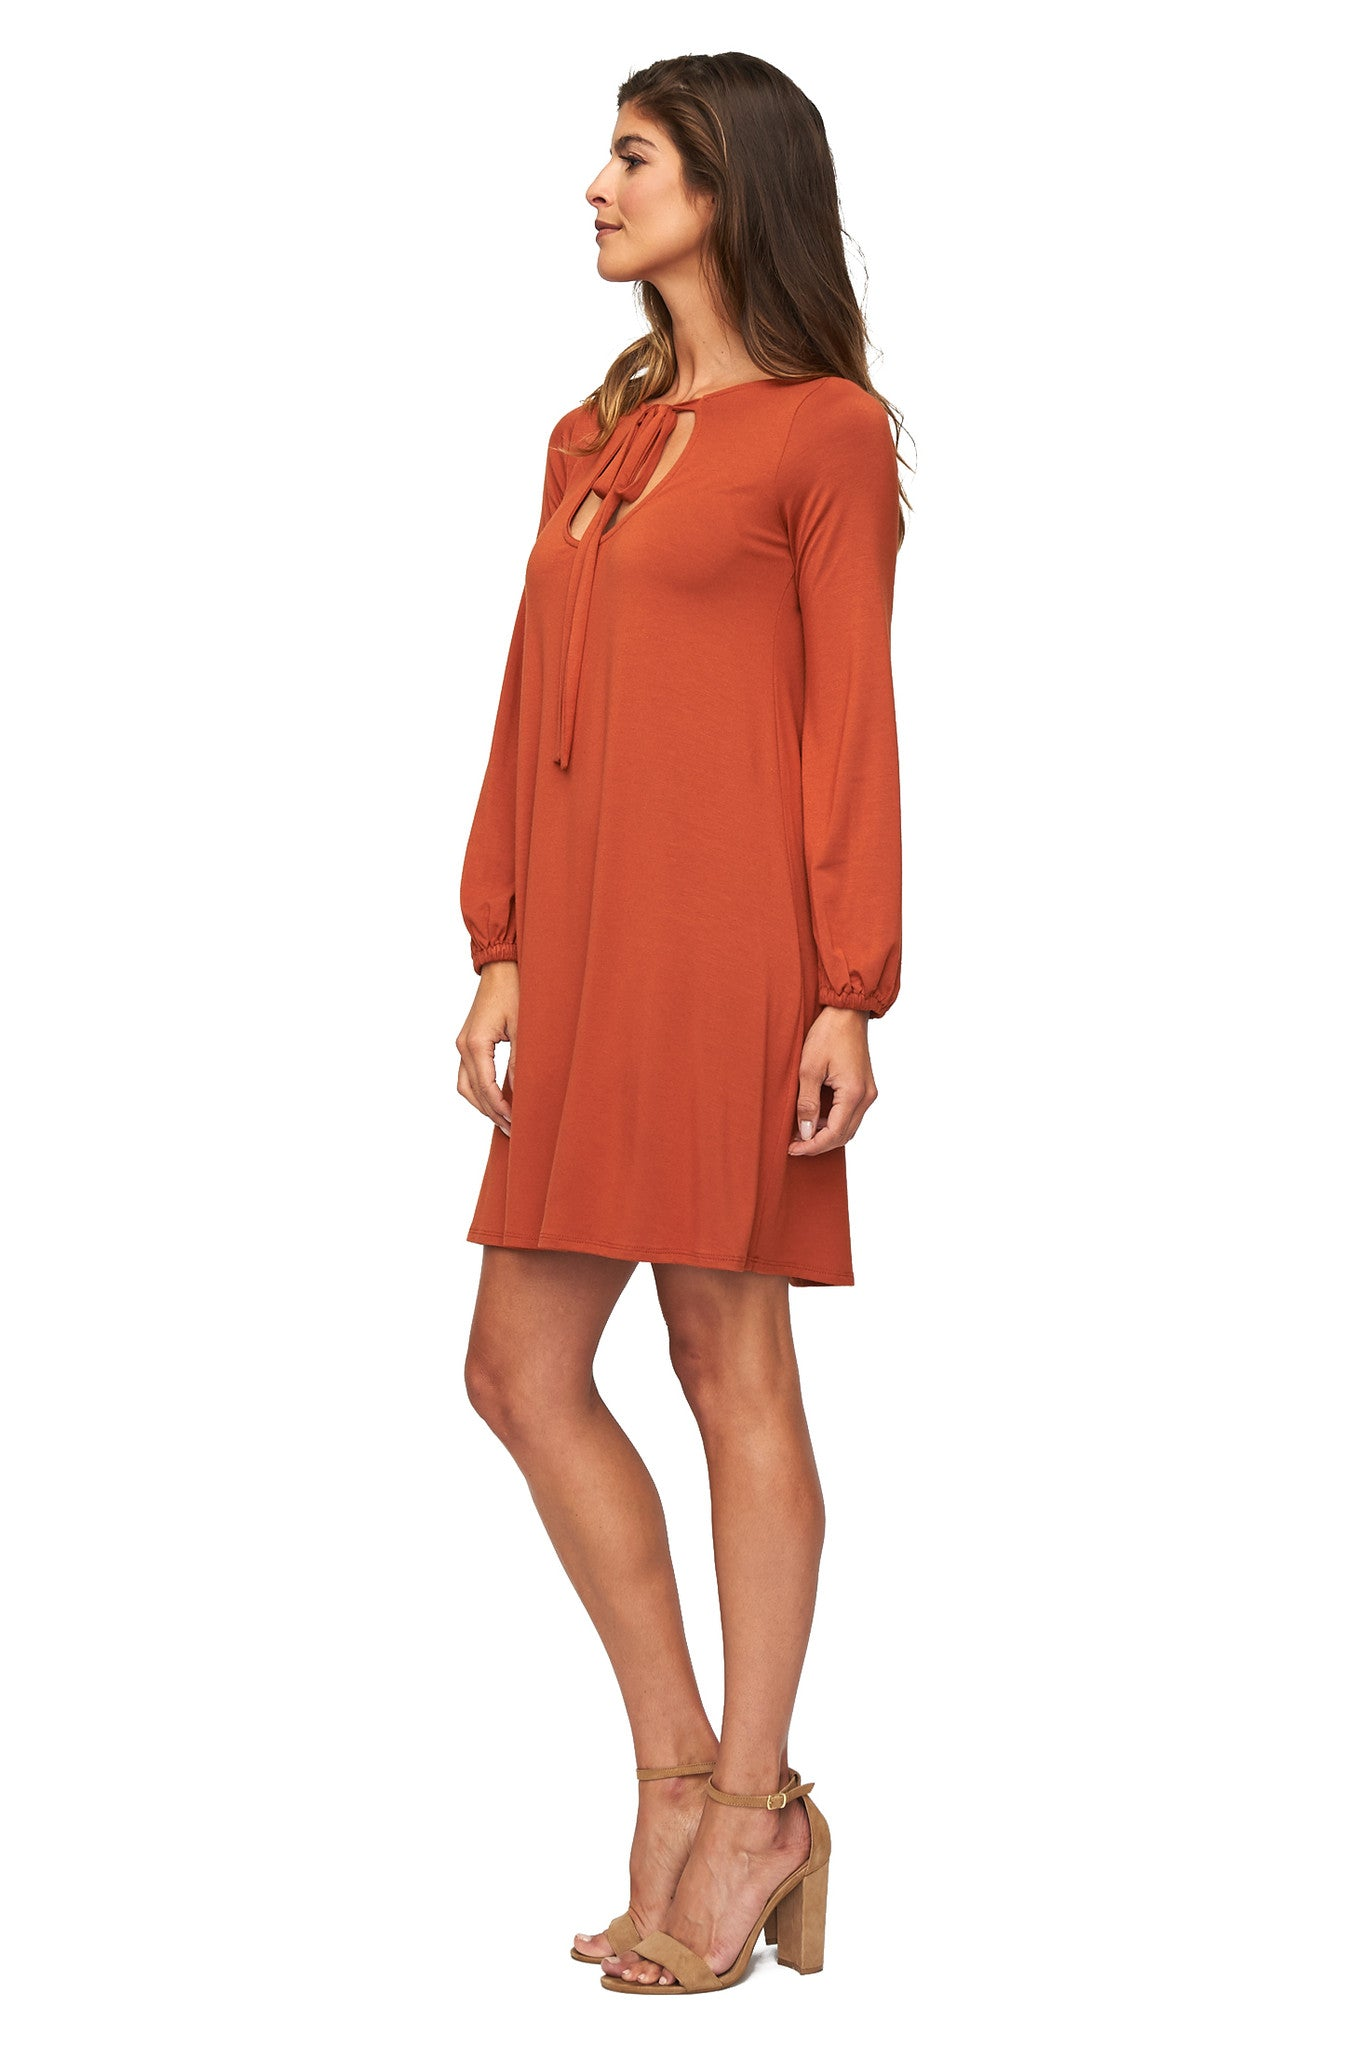 Kyrie Dress - Copper